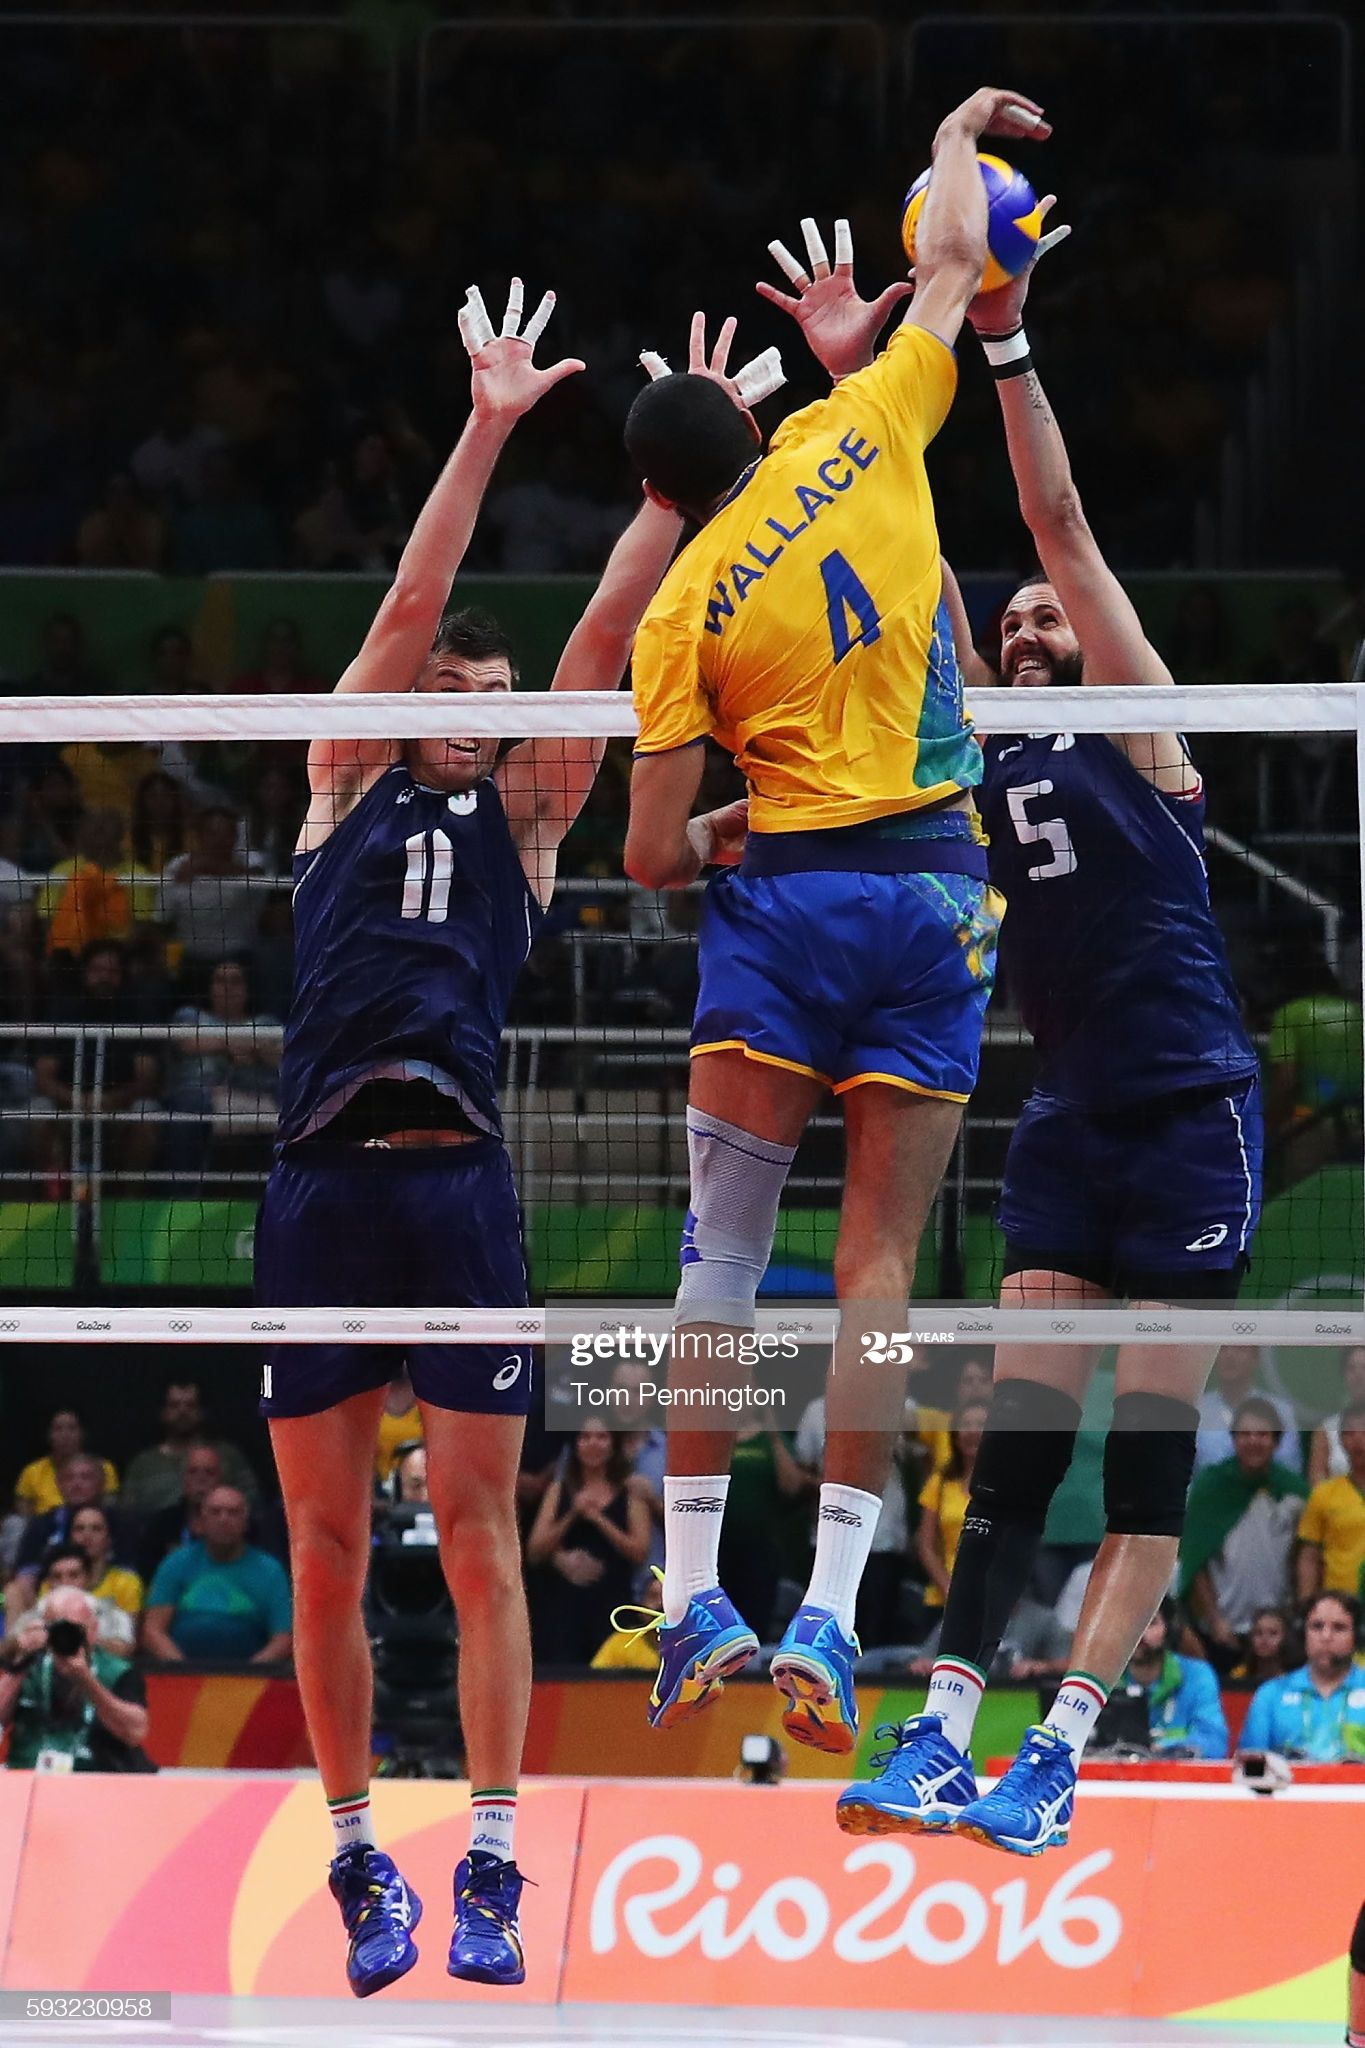 Simone Buti Of Italy And Osmany Juantorena Of Italy Block The Spike In 2020 Volleyball Photography Rio Olympics 2016 2016 Olympic Games